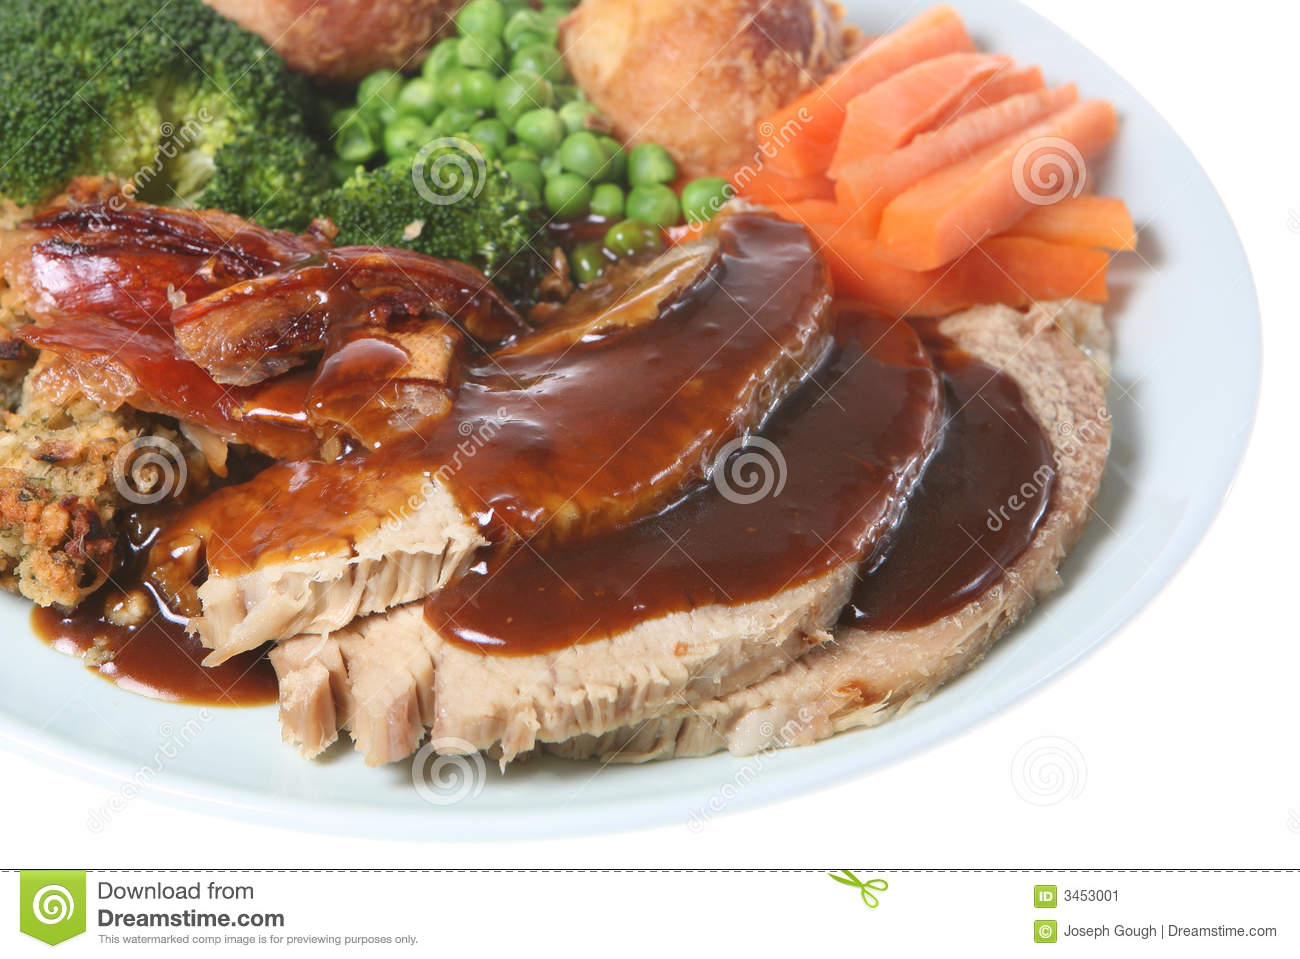 Sunday Roast Pork Dinner Stock Image - Image: 3453001